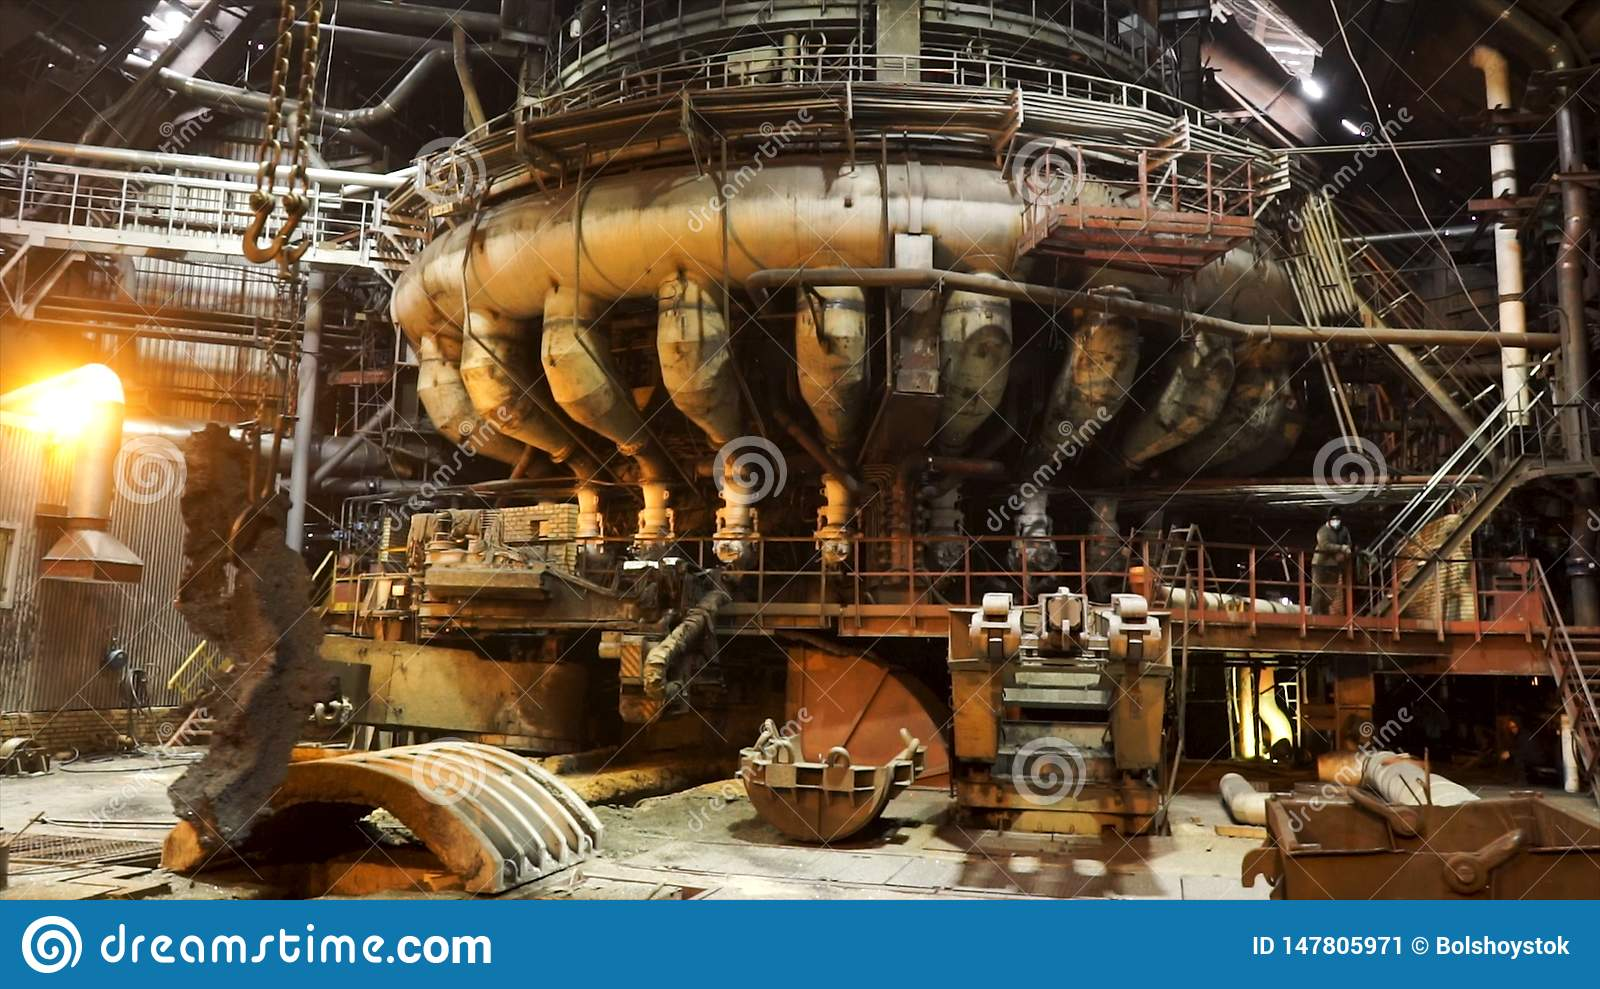 Hot shop of the metallurgical plant with modern machinery, industrial landscape. Stock footage. Molten metal production